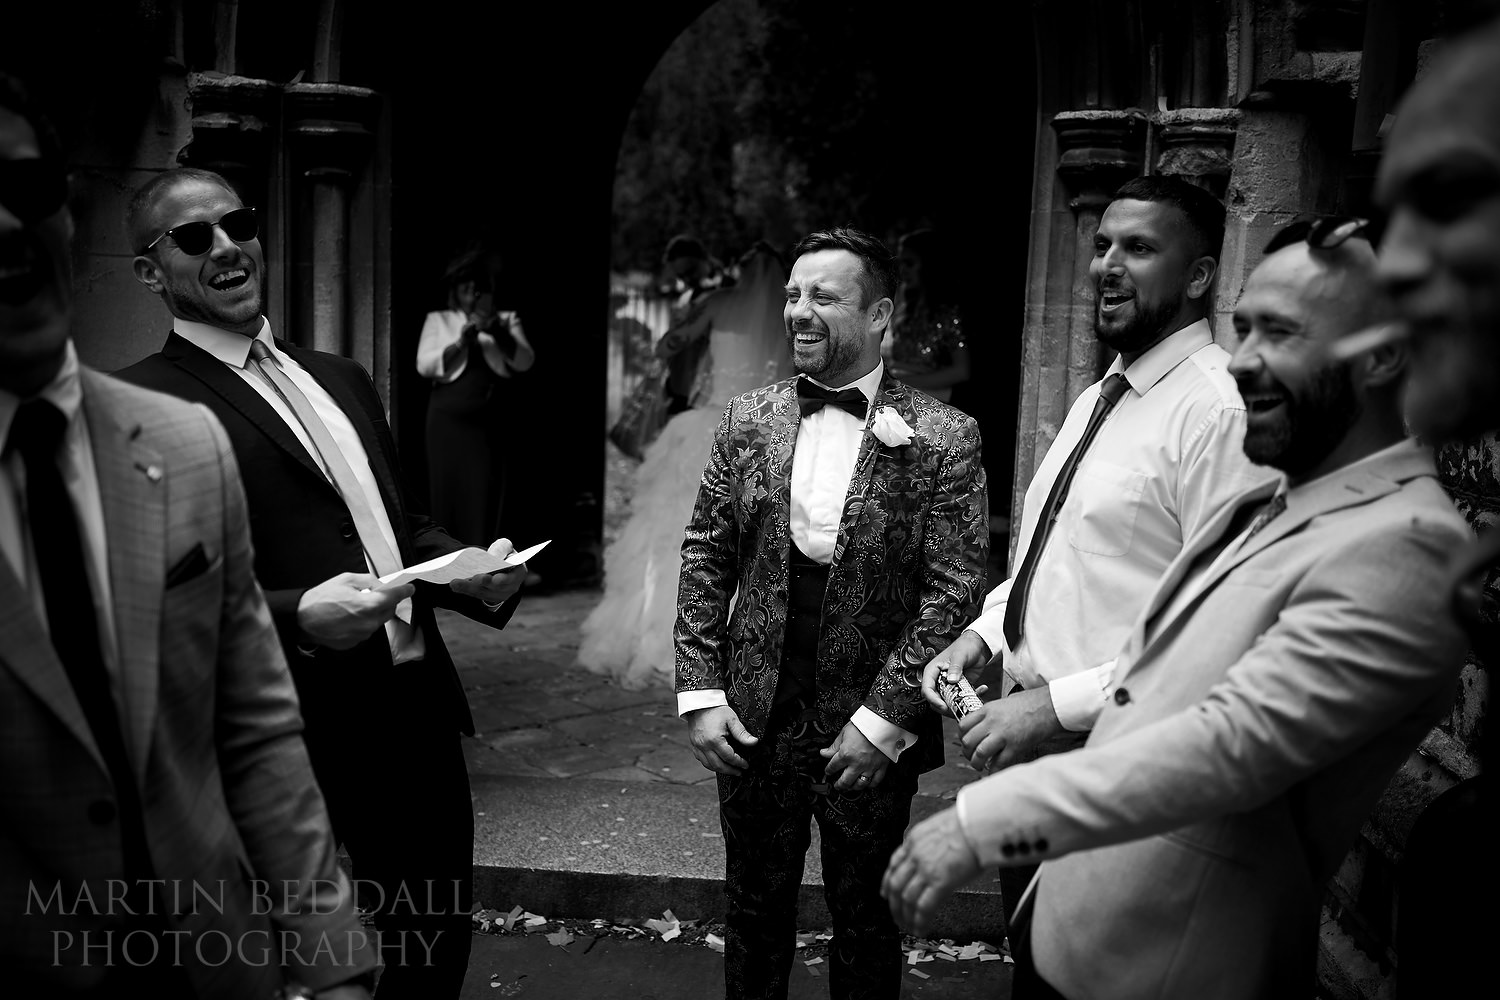 Groom jokes with his mates after the ceremony